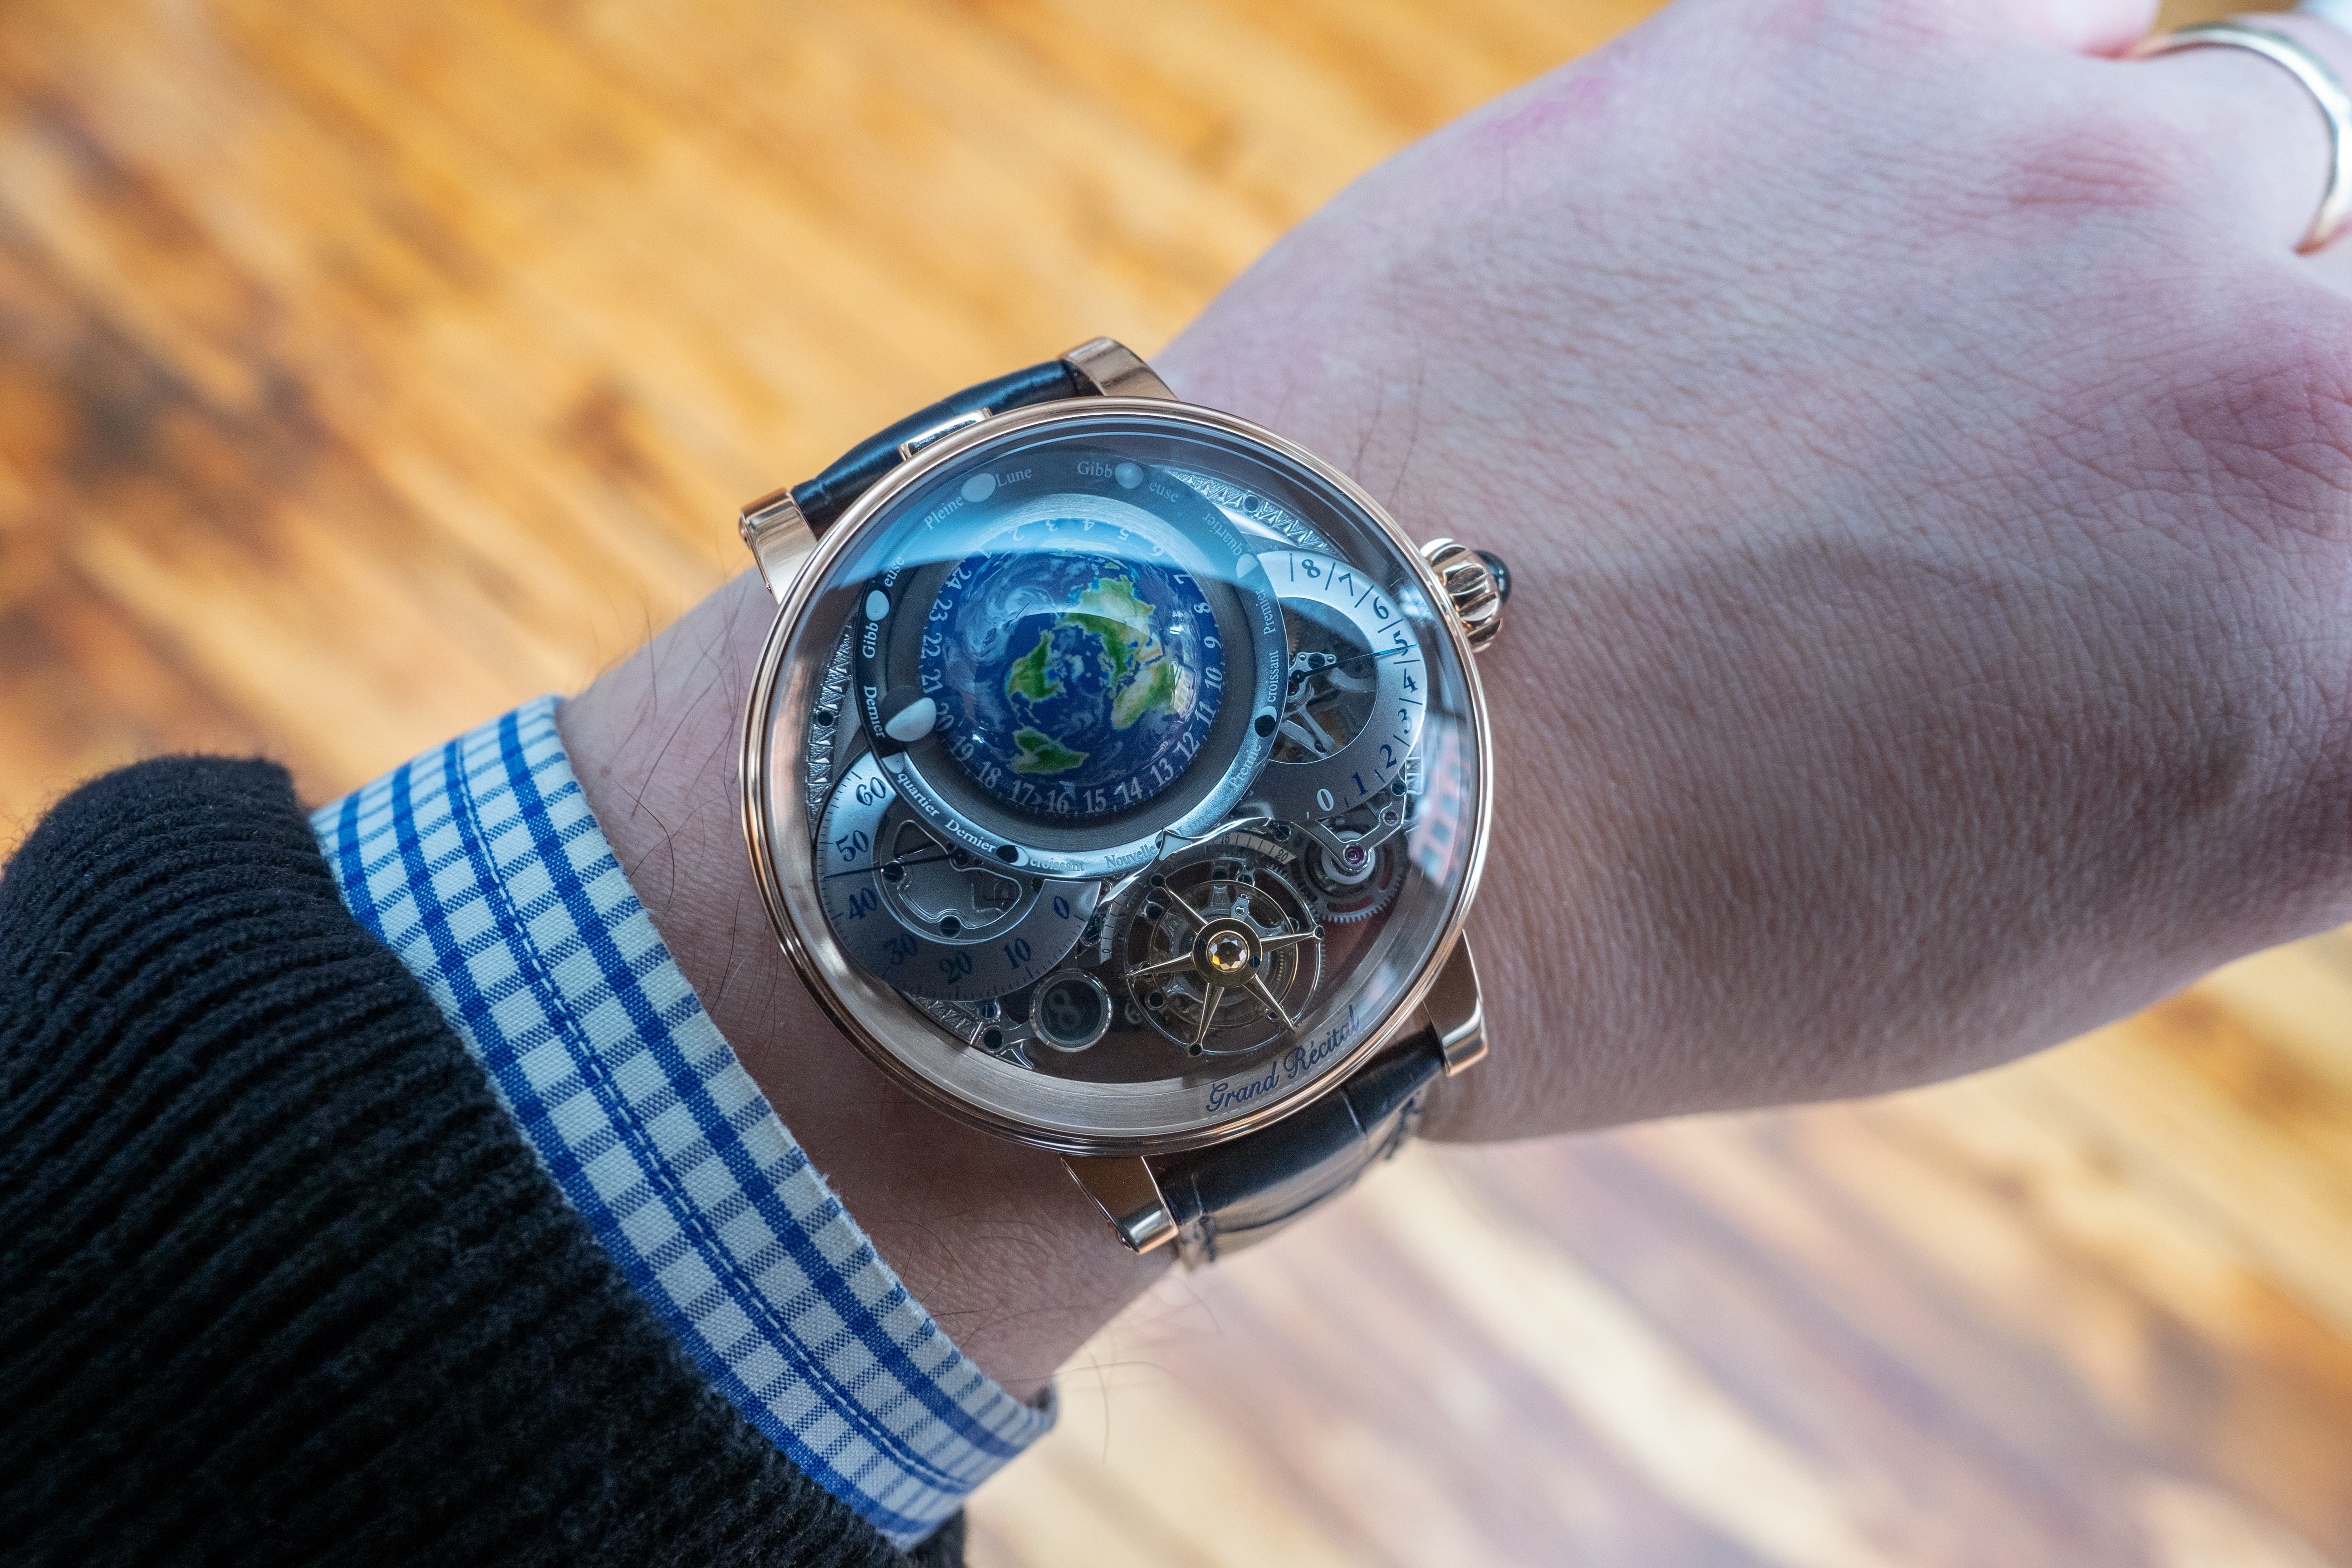 Breaking News: The Bovet Récital 22 Grand Récital Takes Home The Aiguille d'Or At The 2018 GPGH Awards P5180655